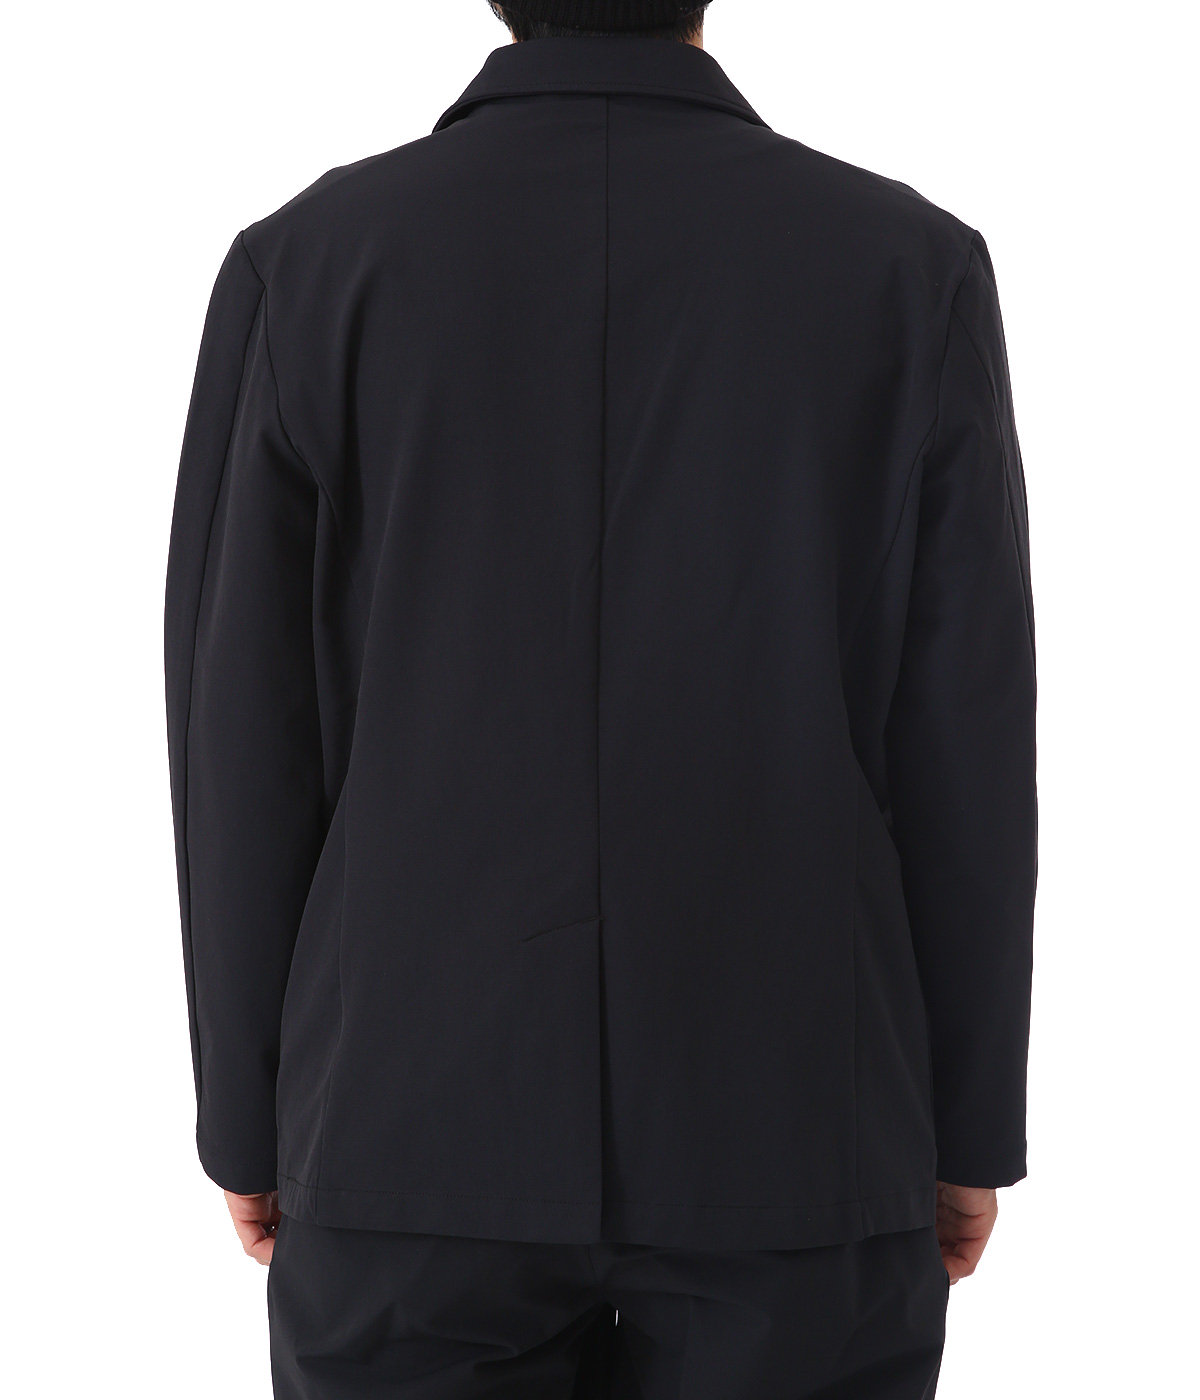 TECH TAILORED JACKET